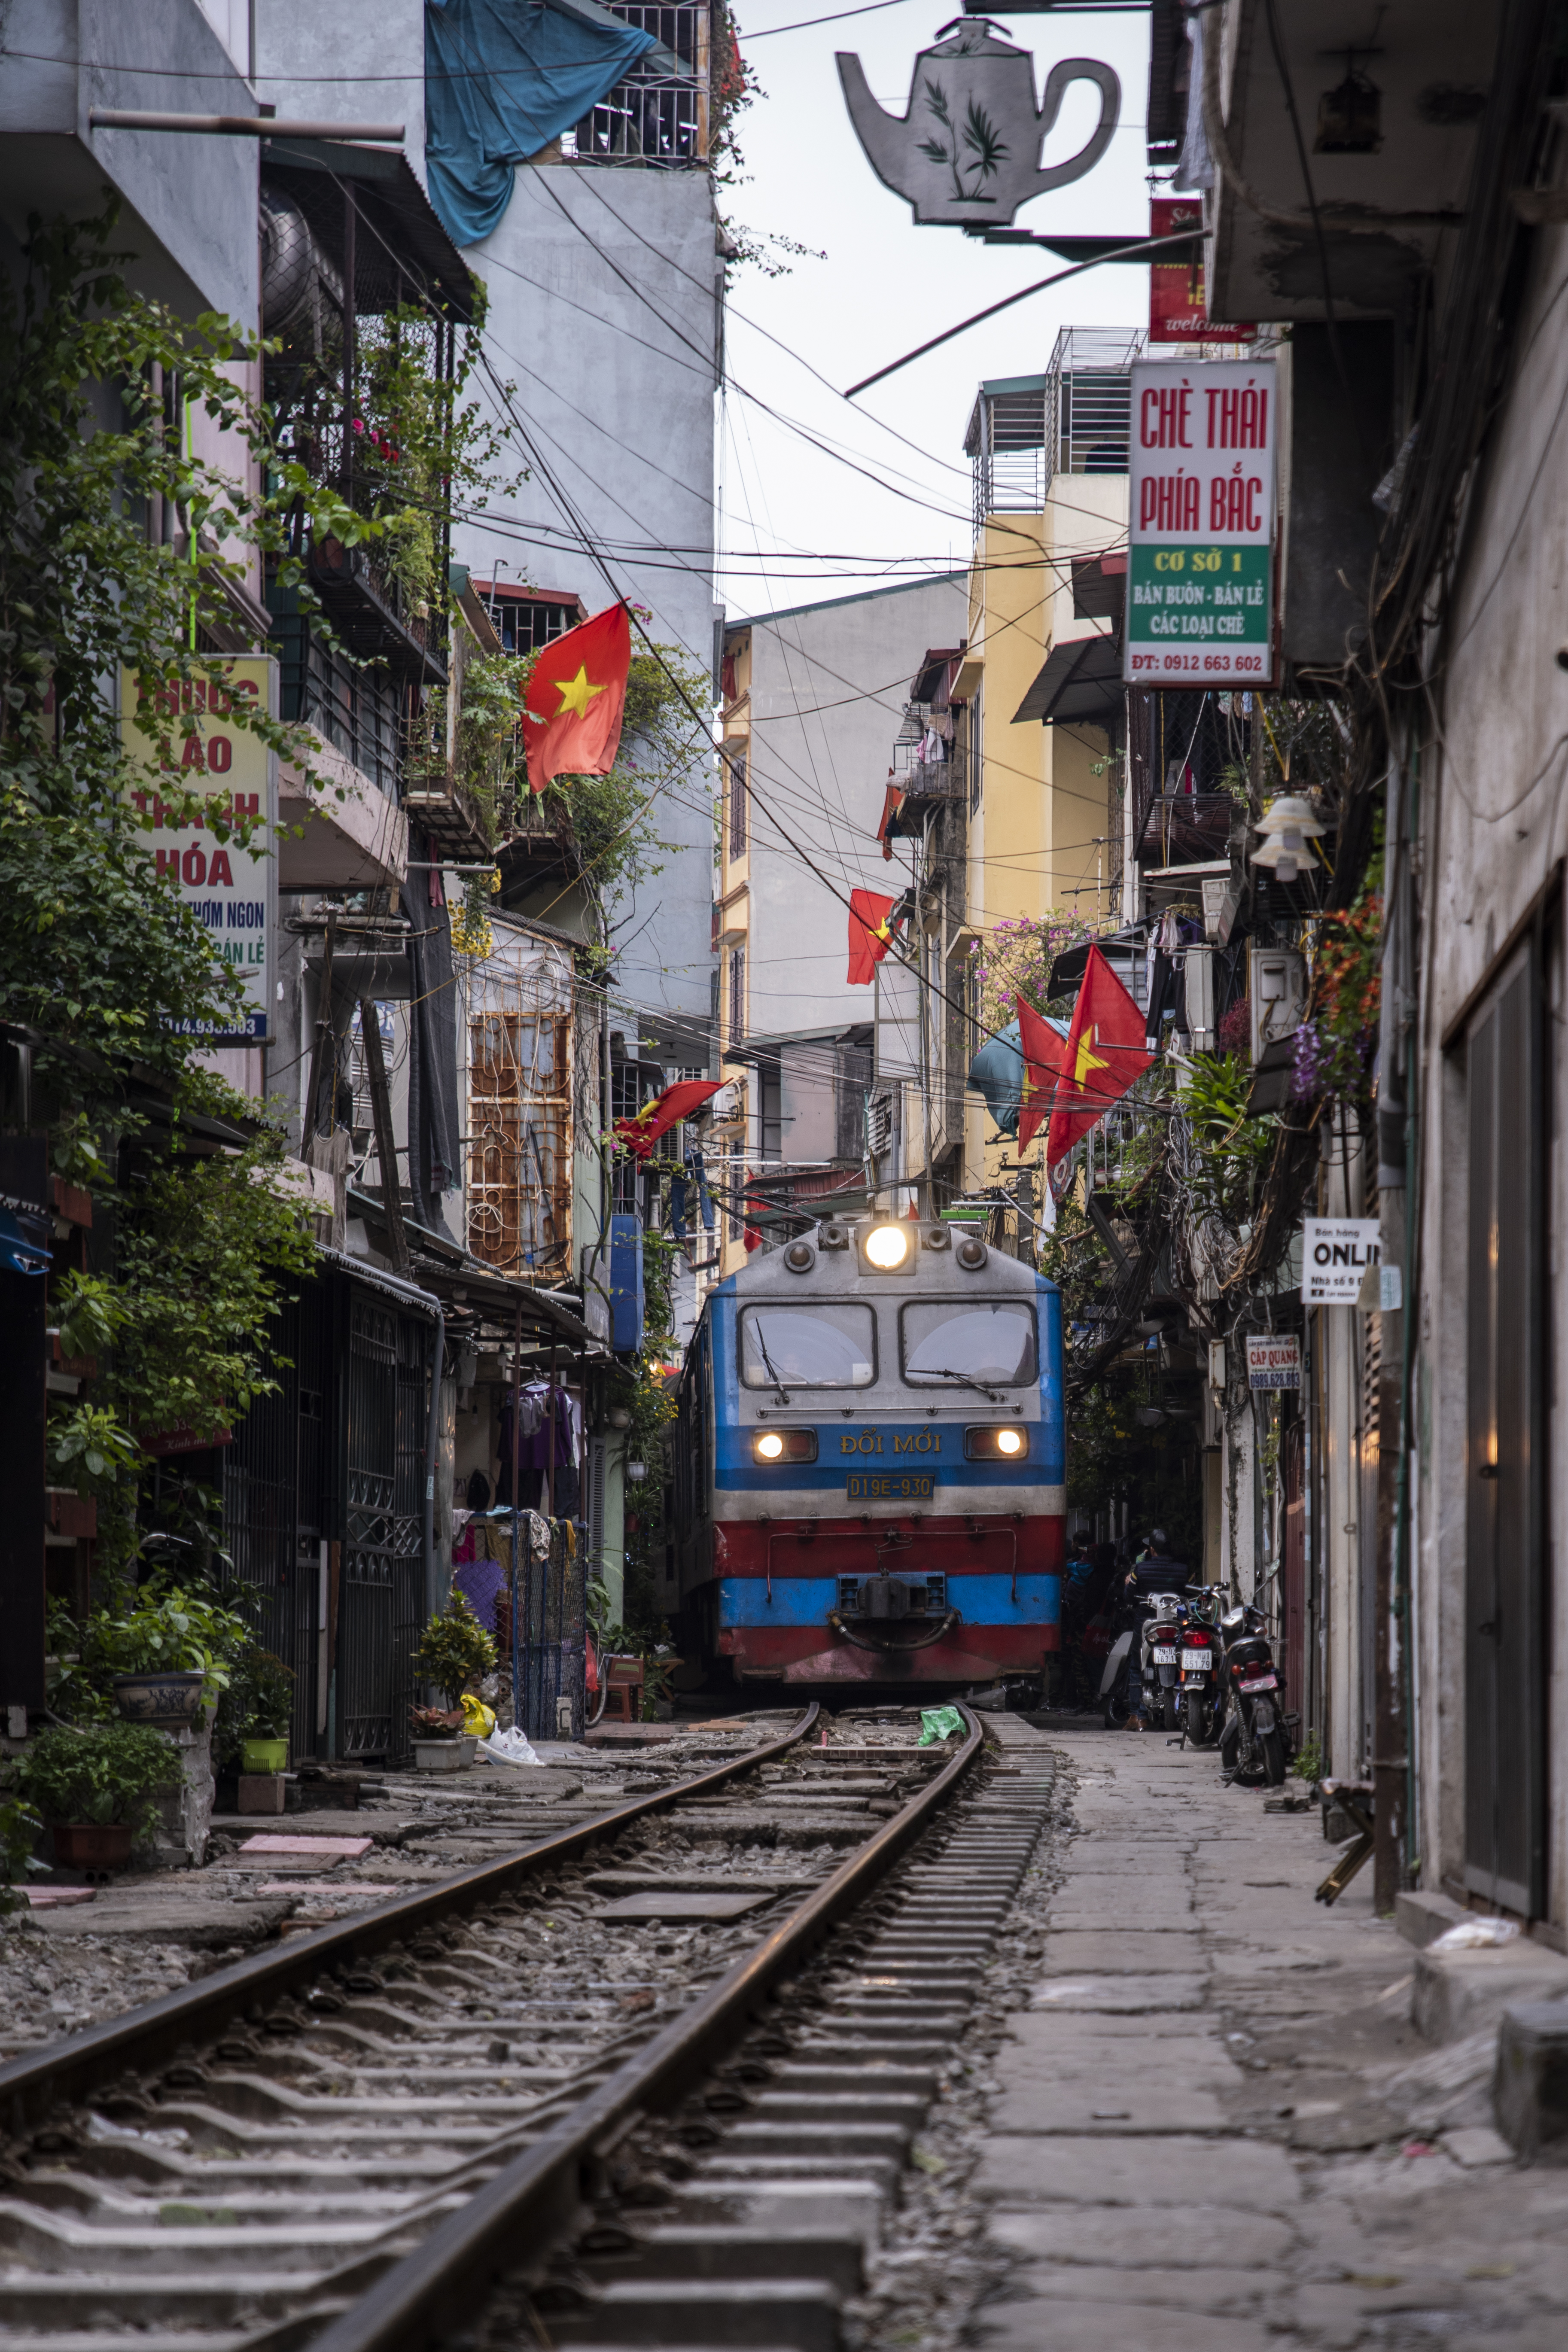 Train on a narrow street